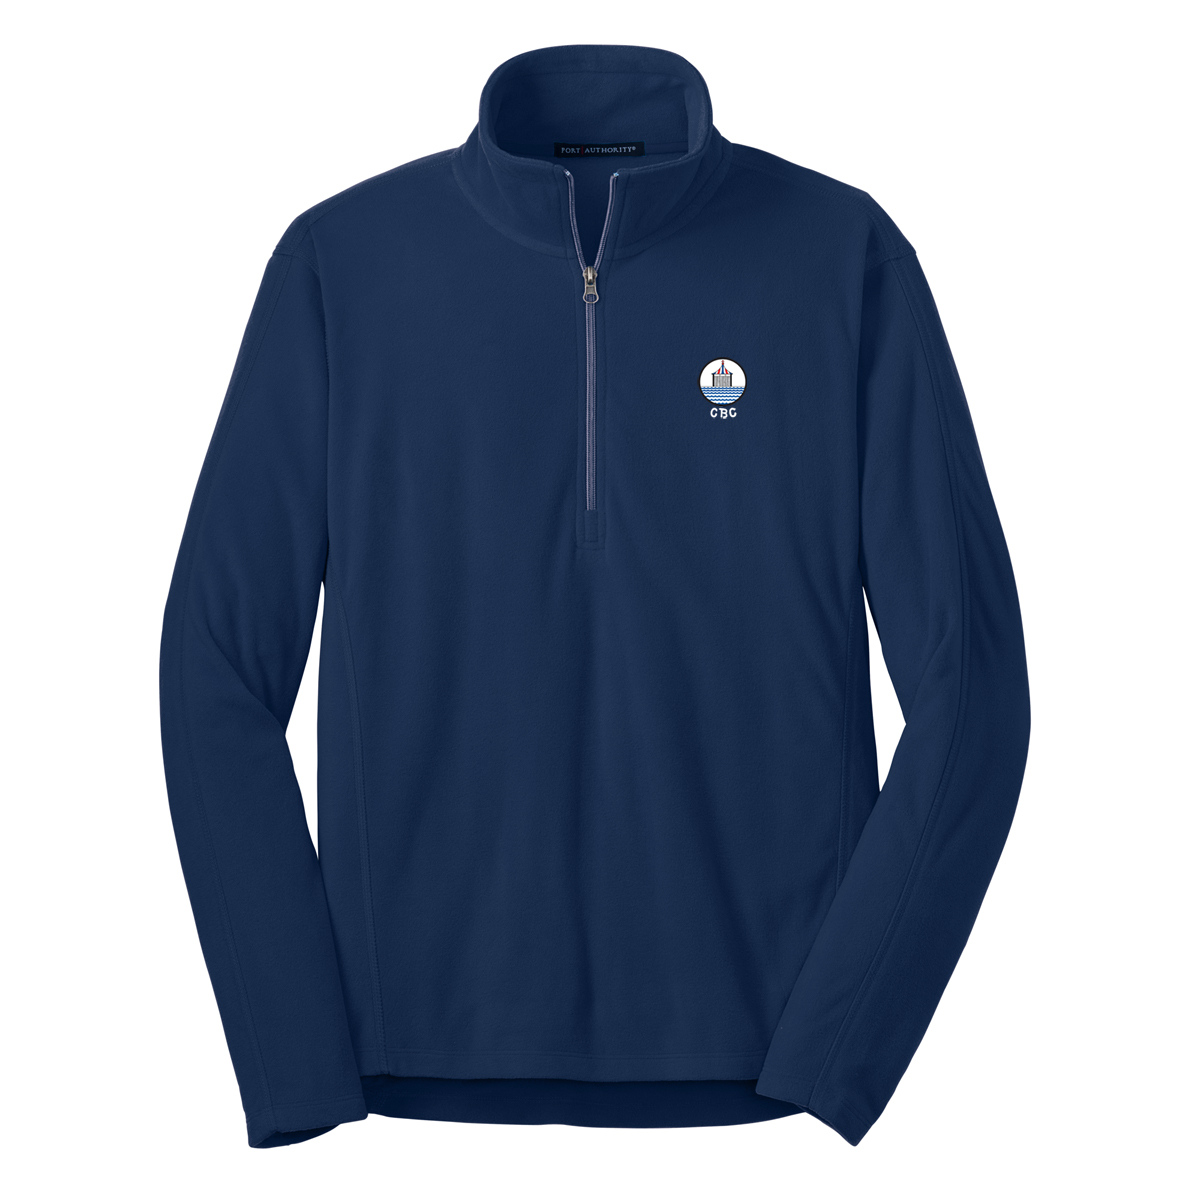 Chappaquiddick Beach Club - Men's Microfleece 1/4 Zip Pullover